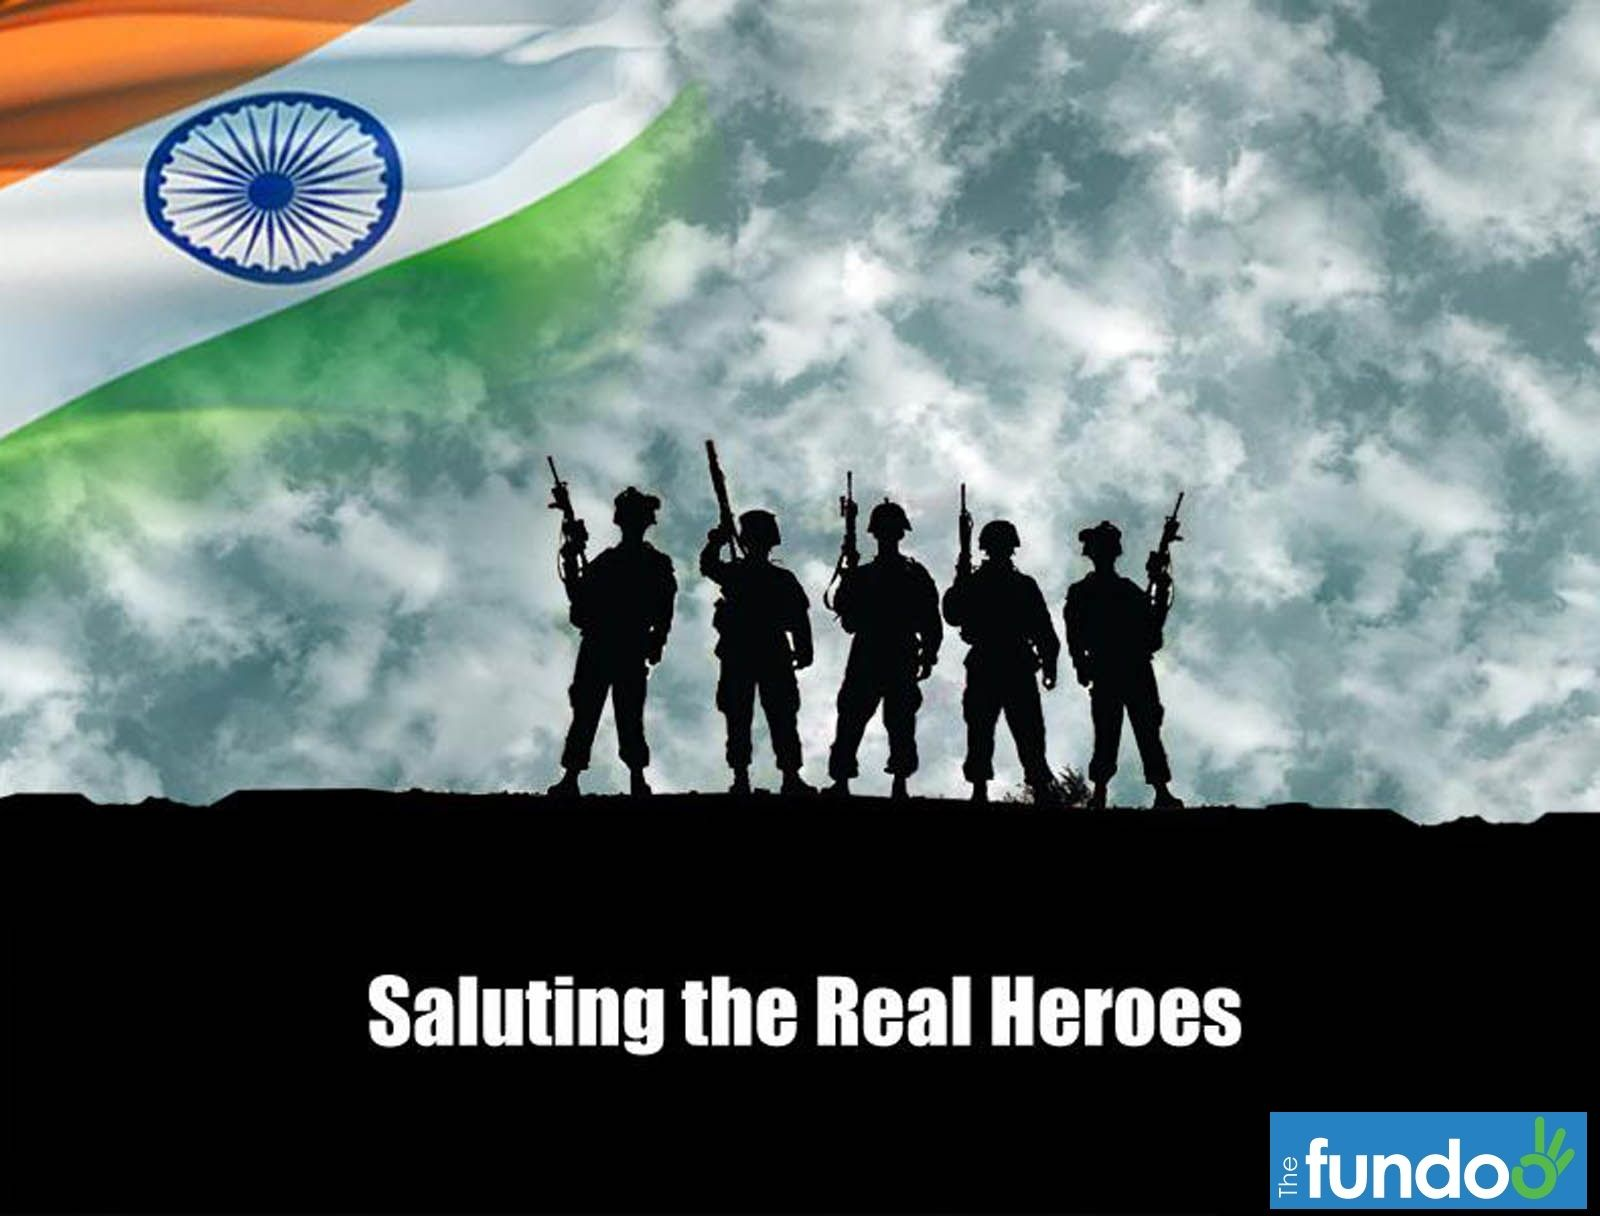 We salute to the real heroes of India on the occasion of 1600x1216